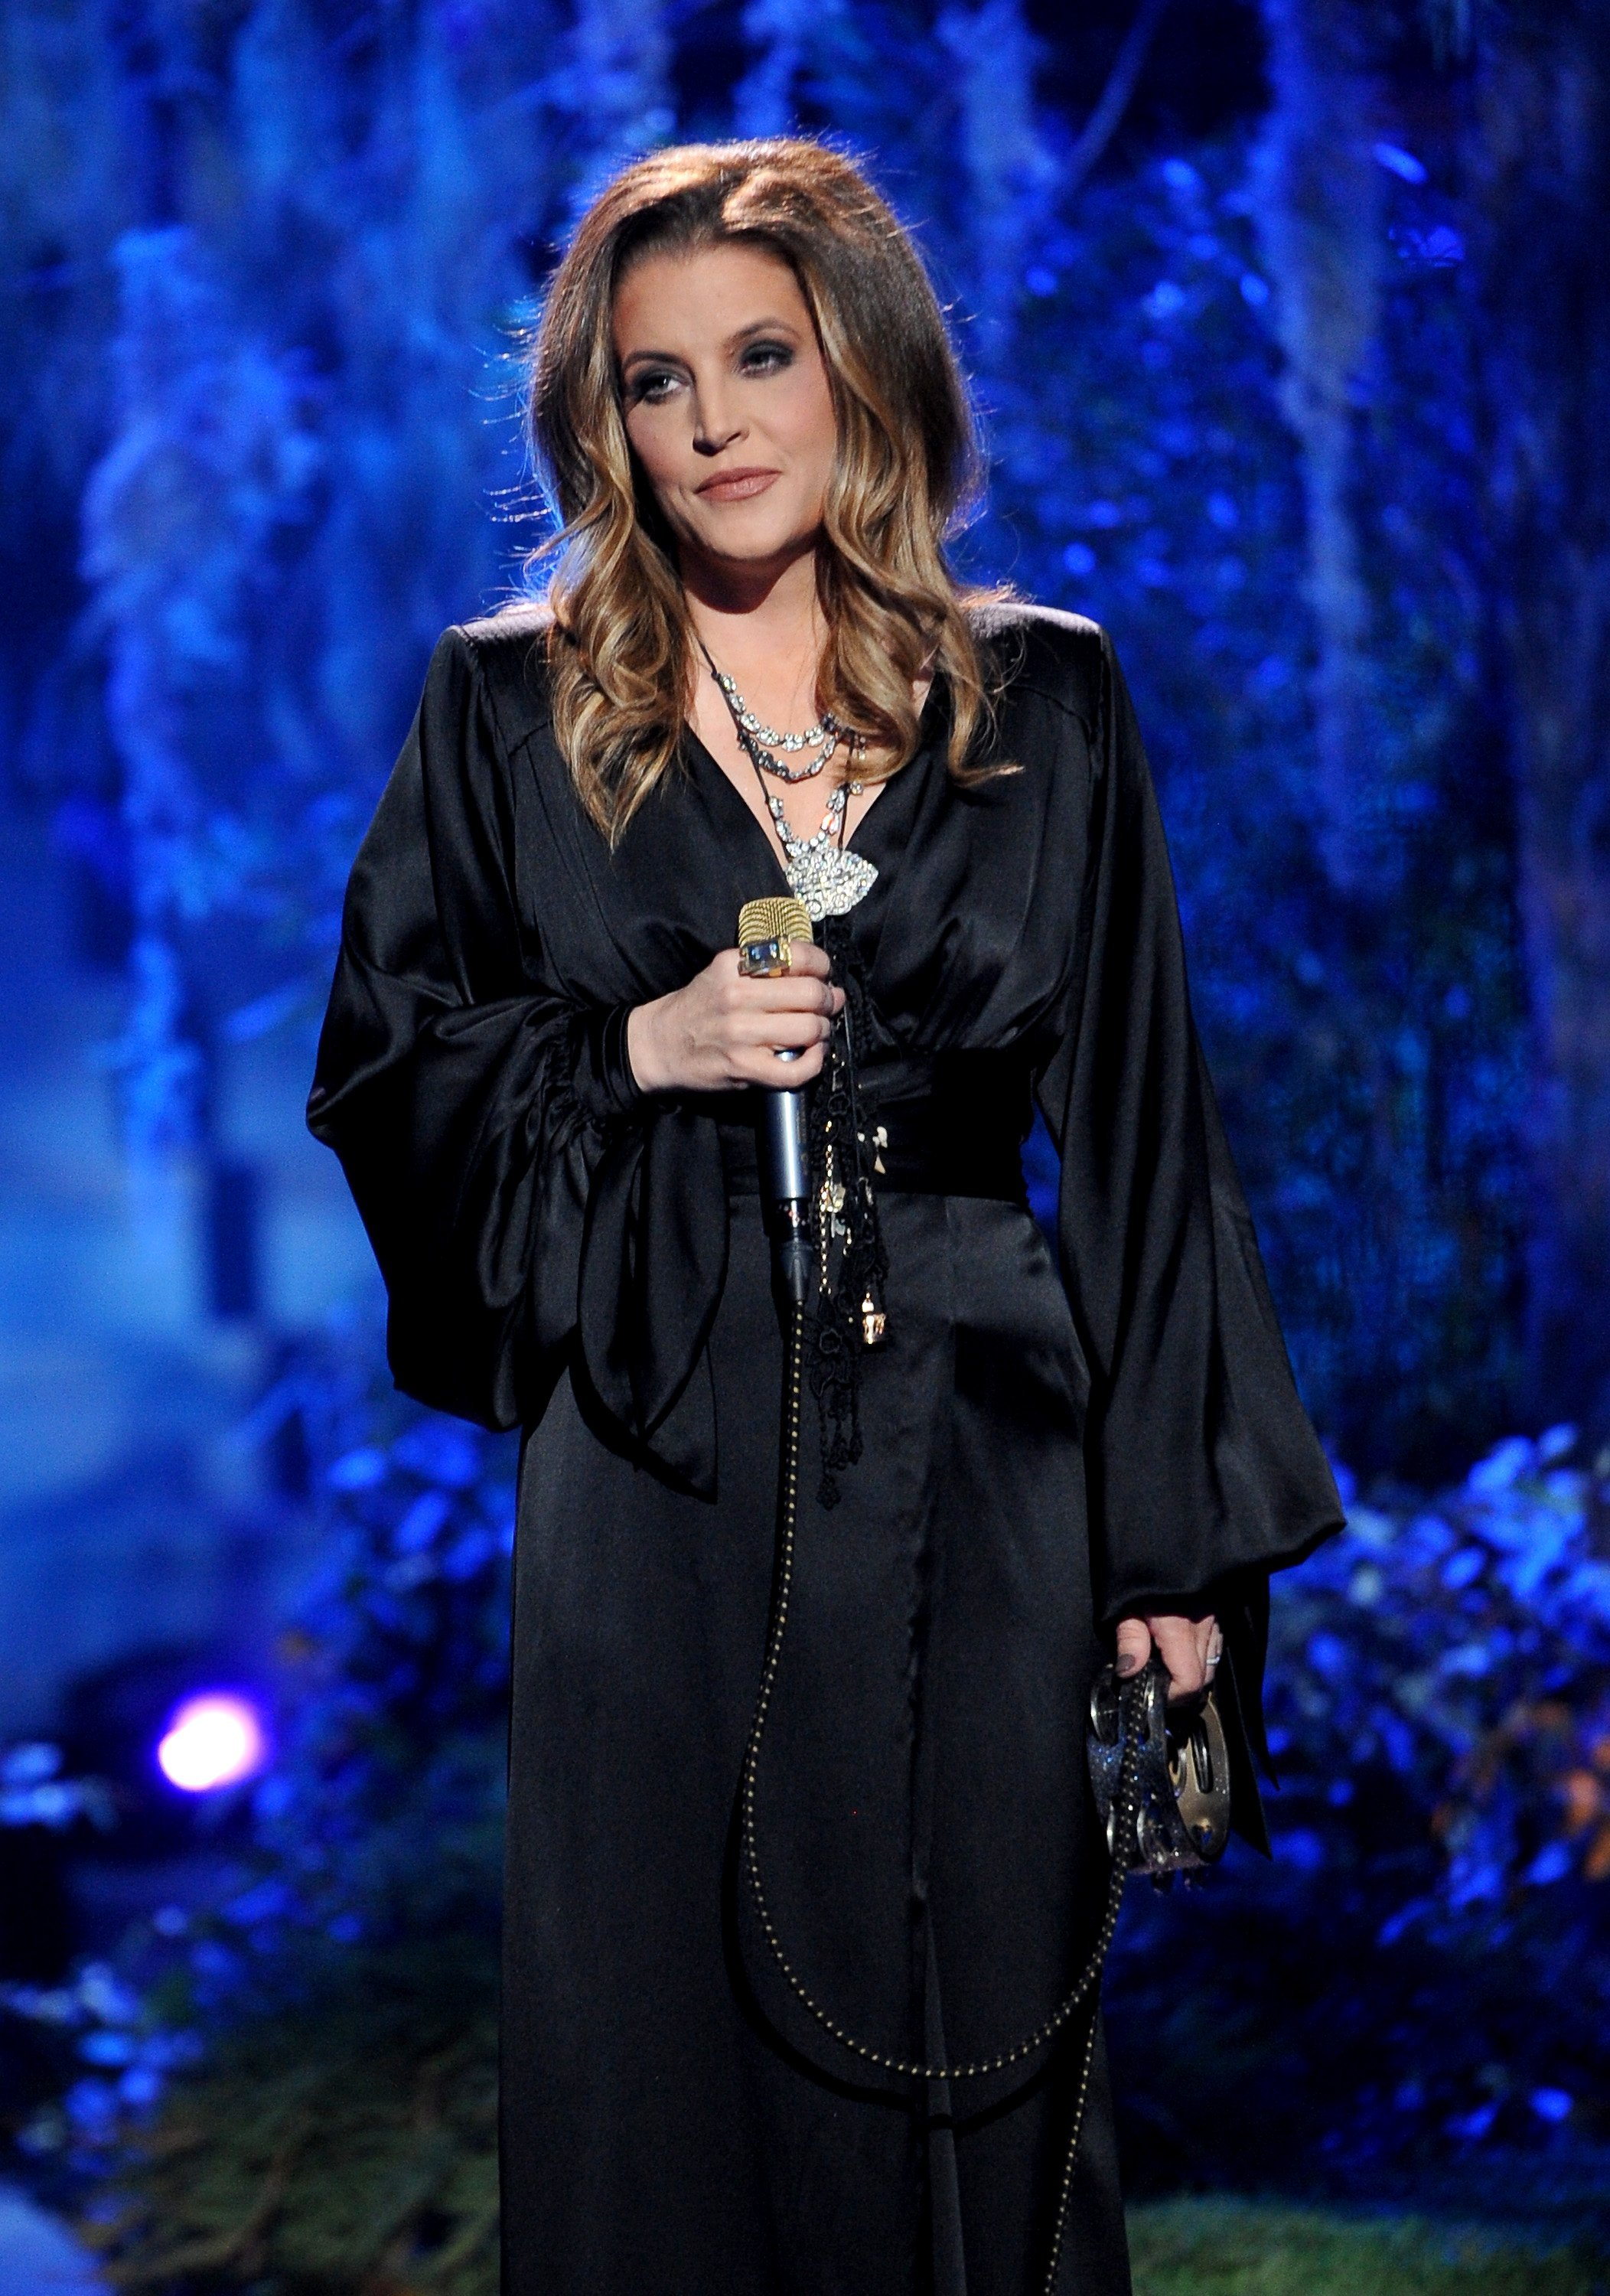 Lisa Marie Presley performing during the pre-taping of American Idol Season 11 on May 17, 2012 in Hollywood. | Source: Getty Images